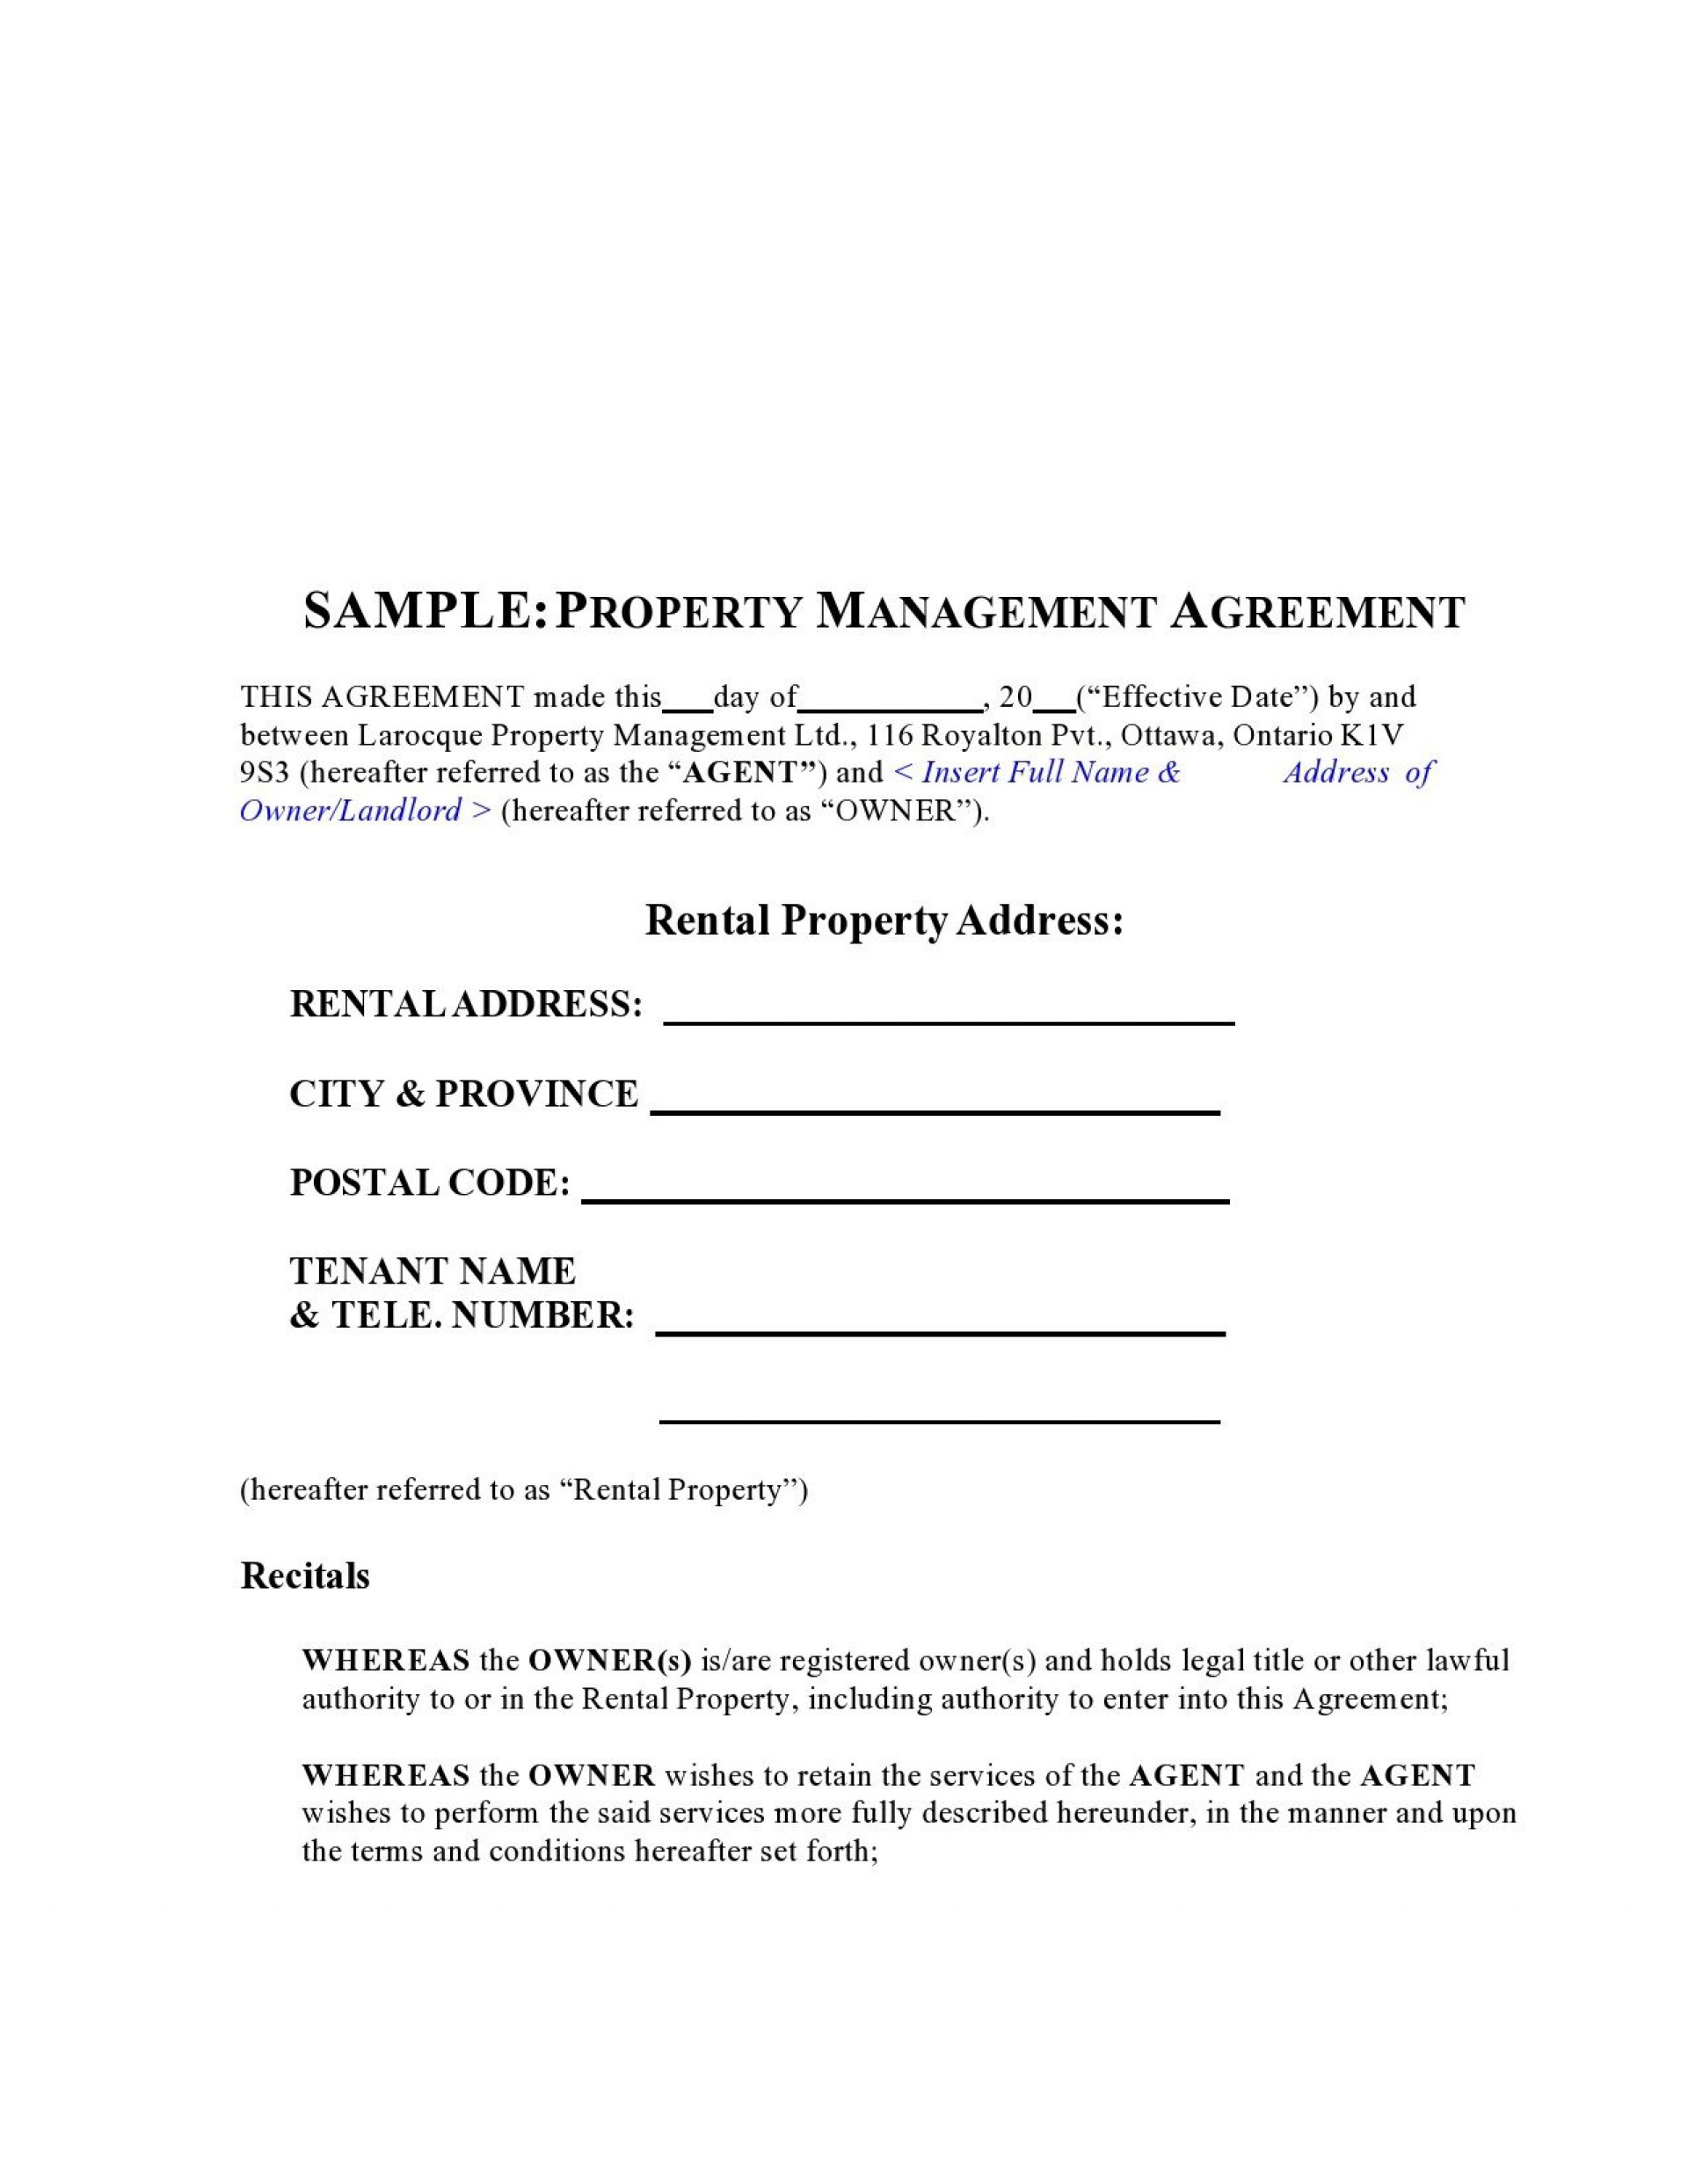 009 Unbelievable Property Management Agreement Template Ontario Sample  Contract1920